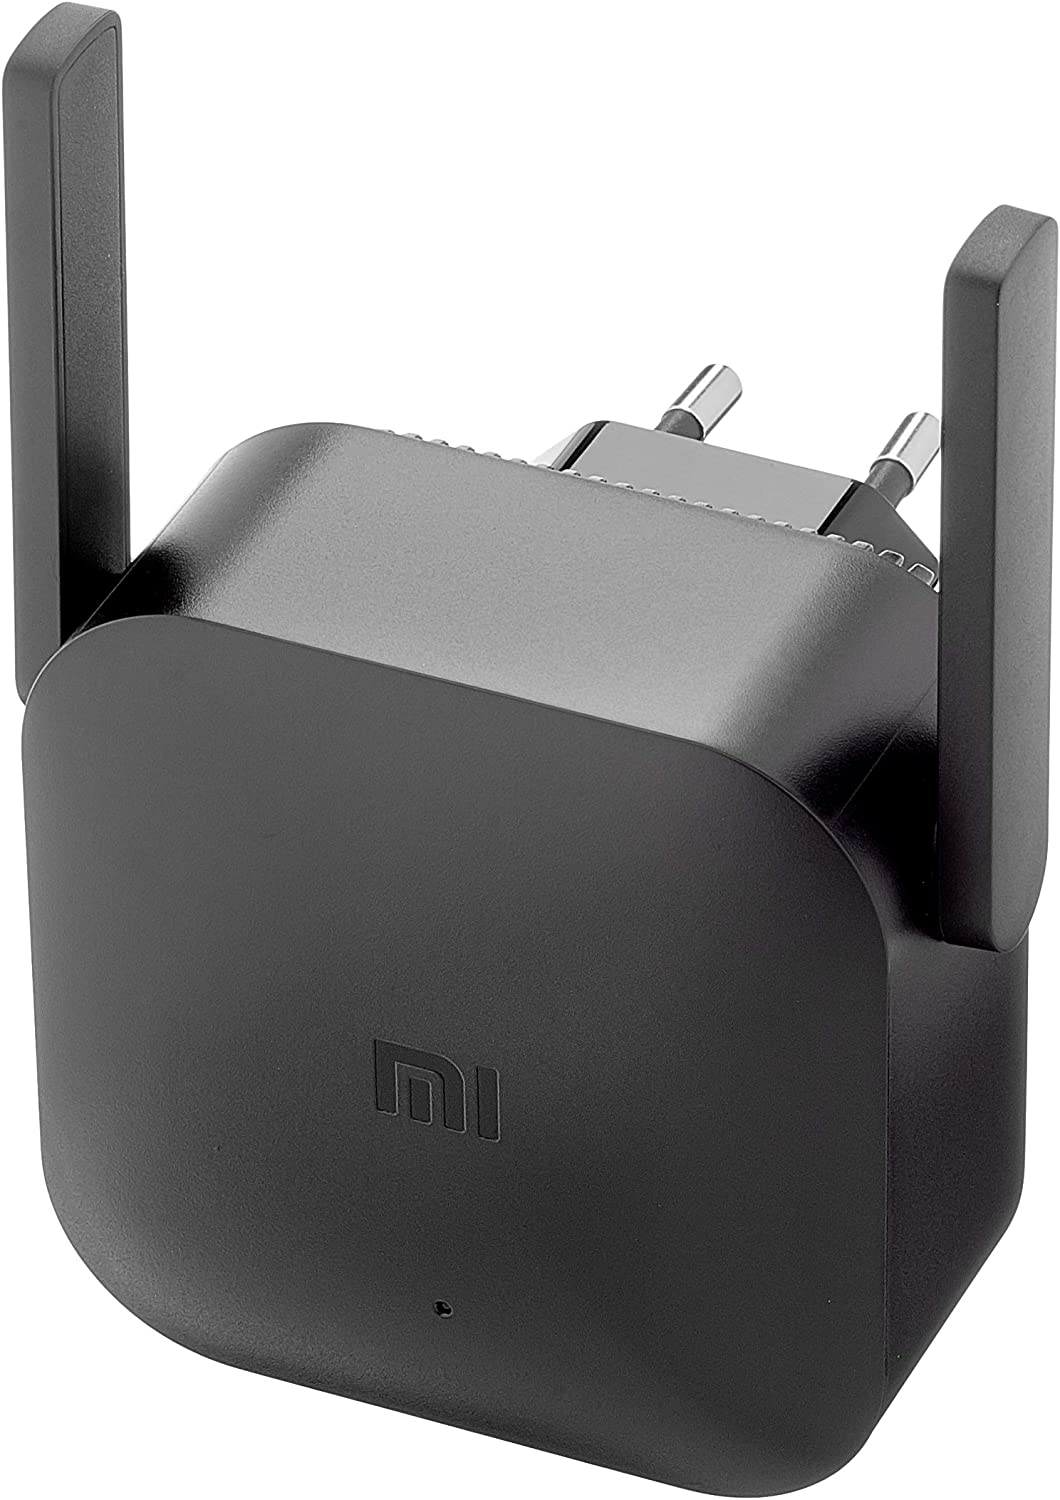 Xiaomi WiFi Extender Pro 300 Mbps Amplificador WiFi Puerto Ethernet,10/100 mbps, con Enchufe, 300 Mbps, 2.4 GHz